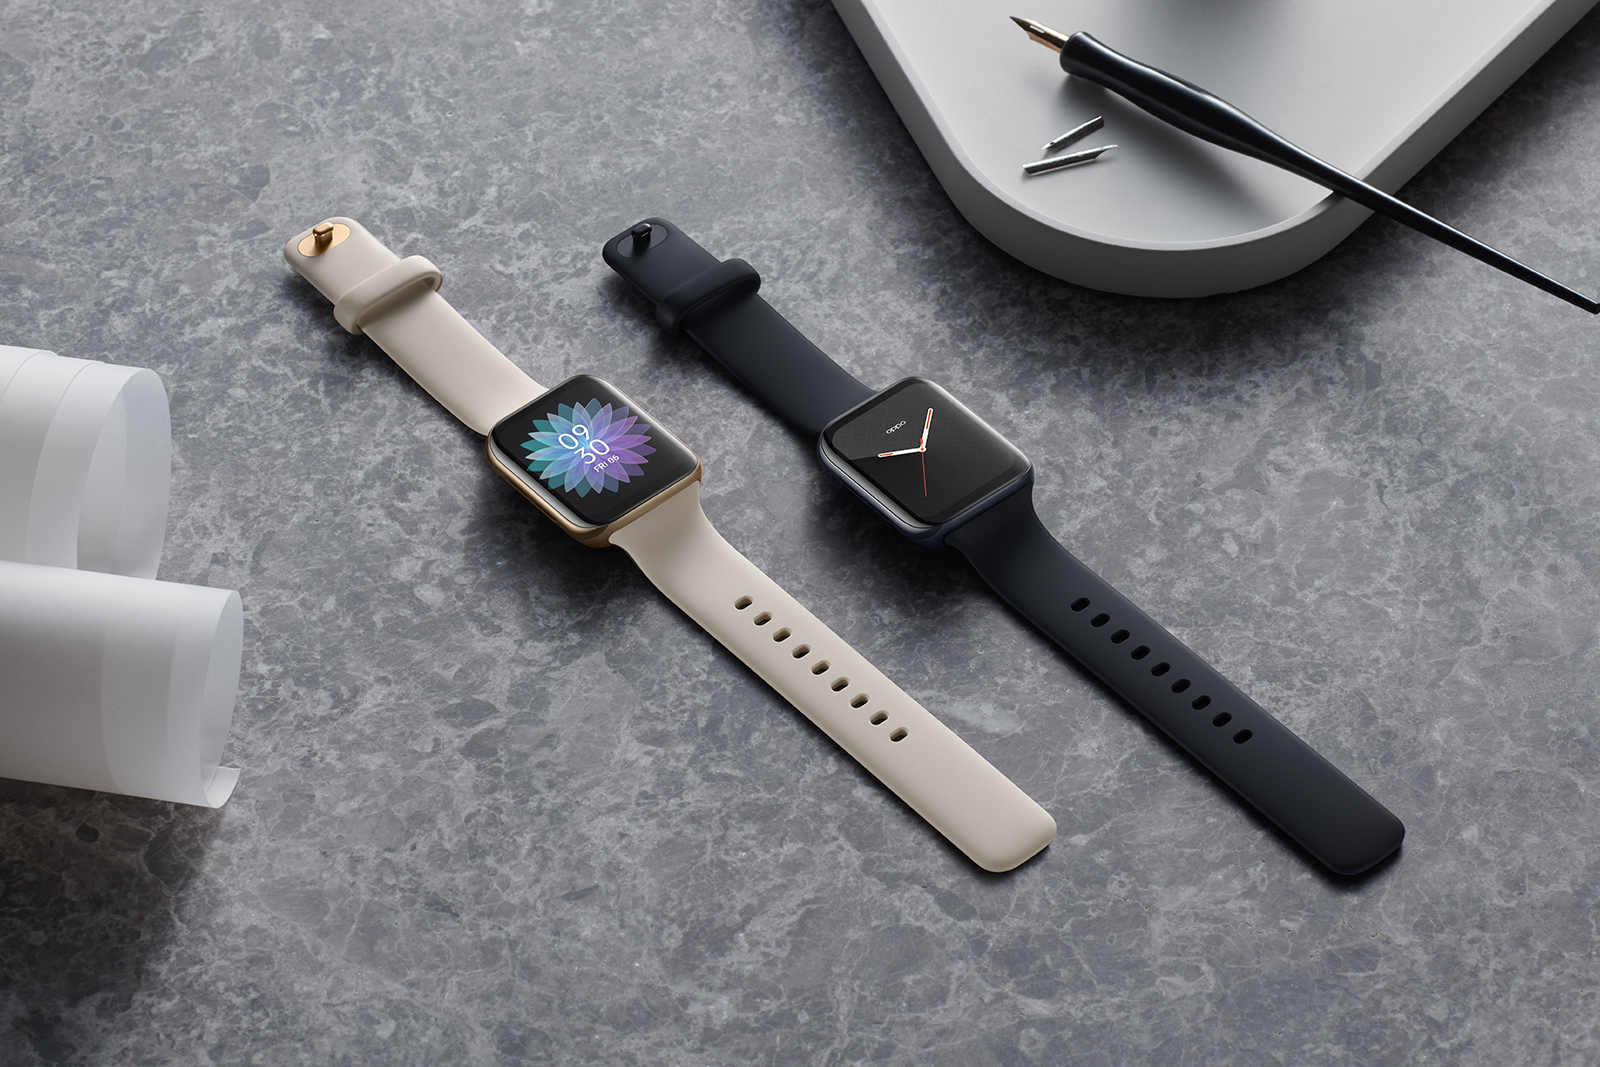 Two sizes of the new Oppo Watch are available